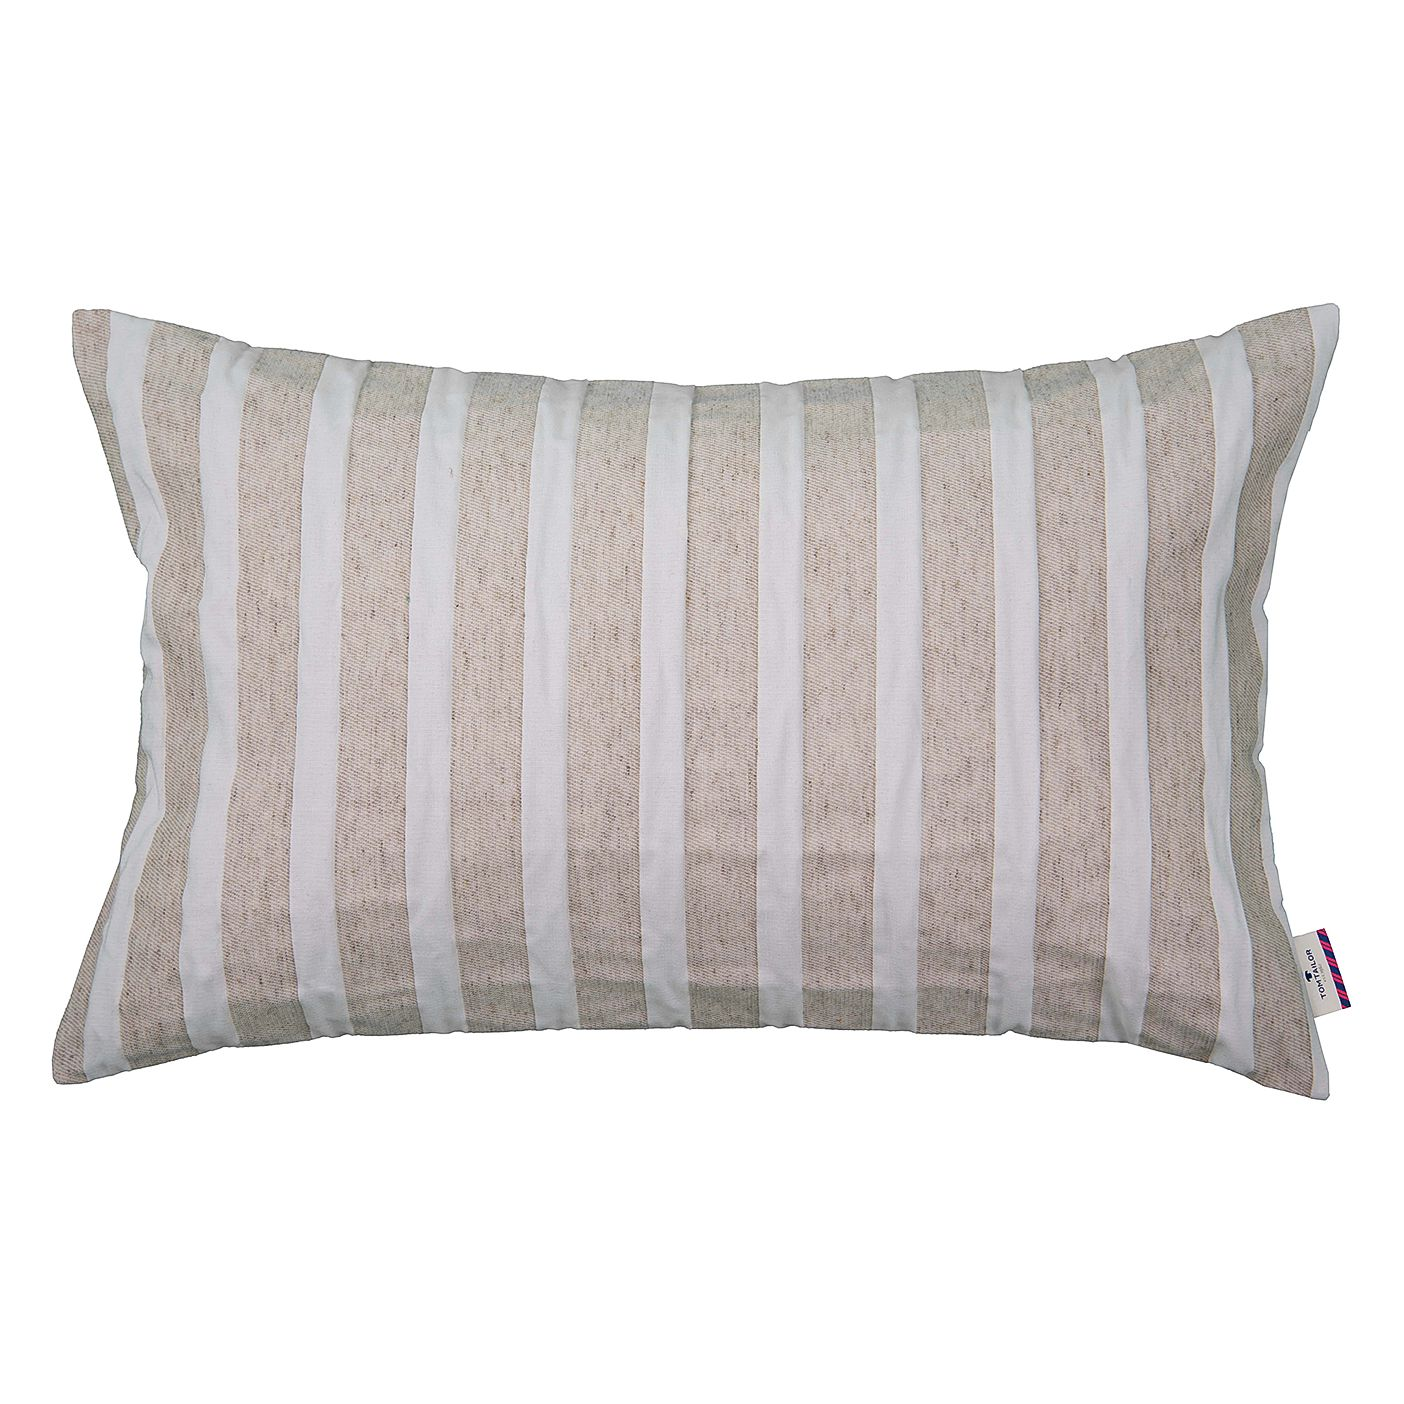 Image of Federa per cuscino Linen Stripes, Tom Tailor